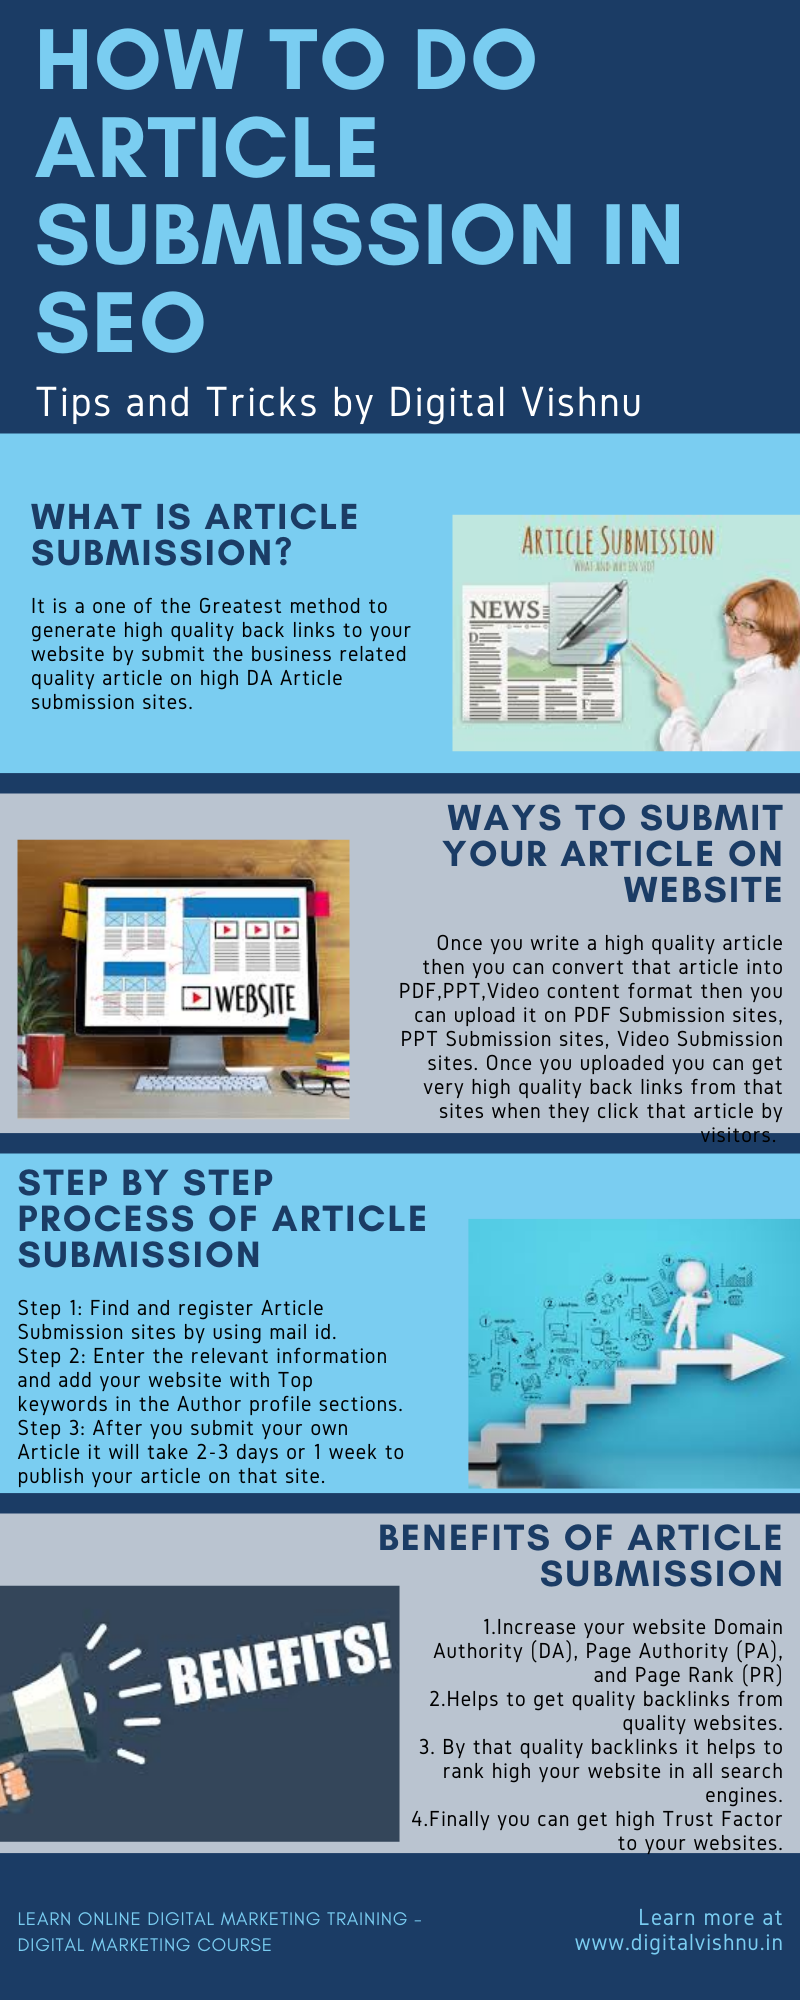 How to do Article Submission on websites